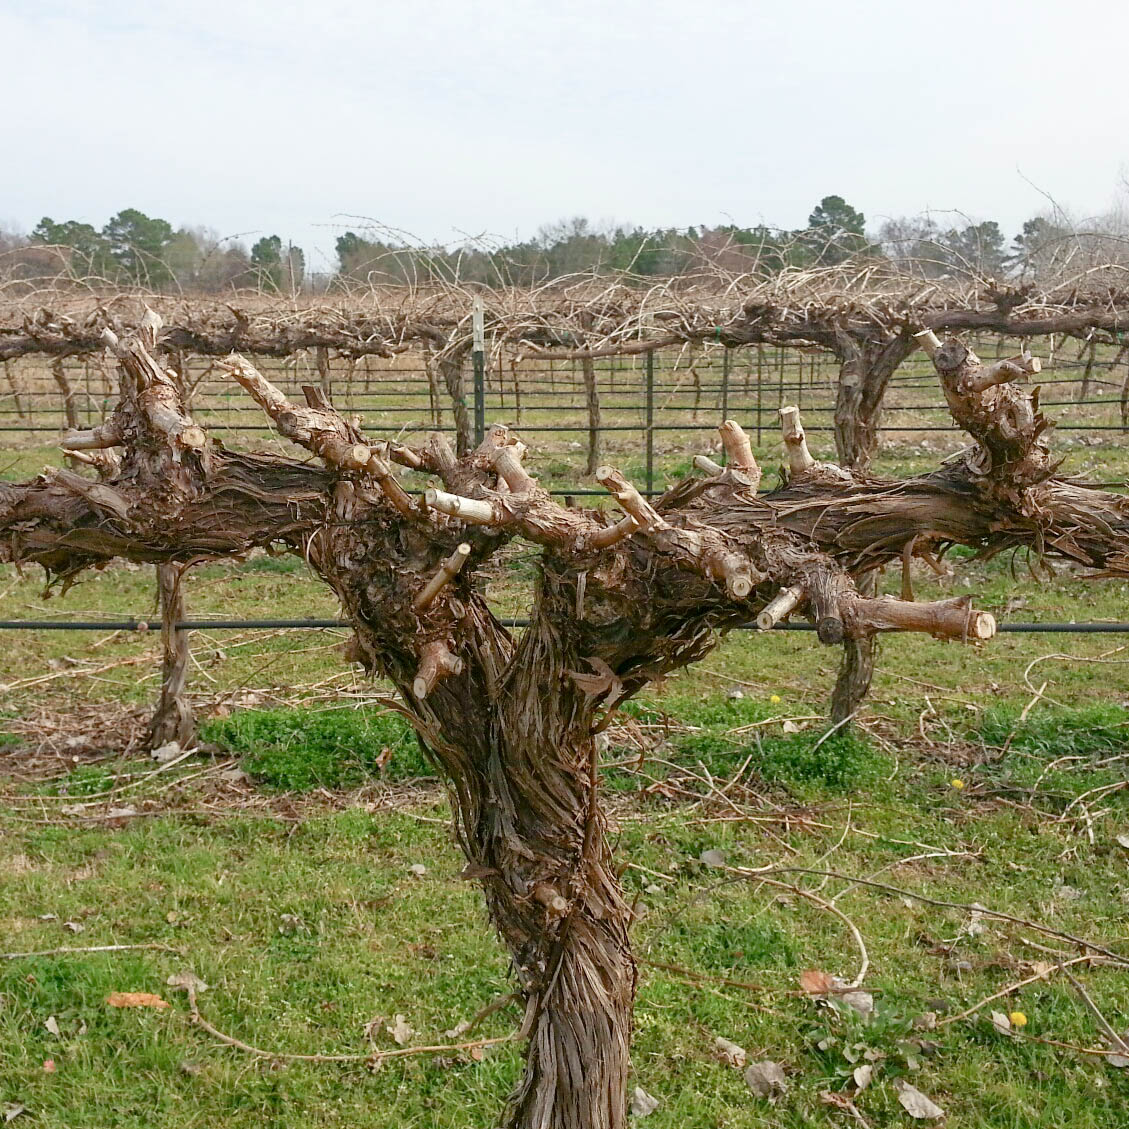 After pruning